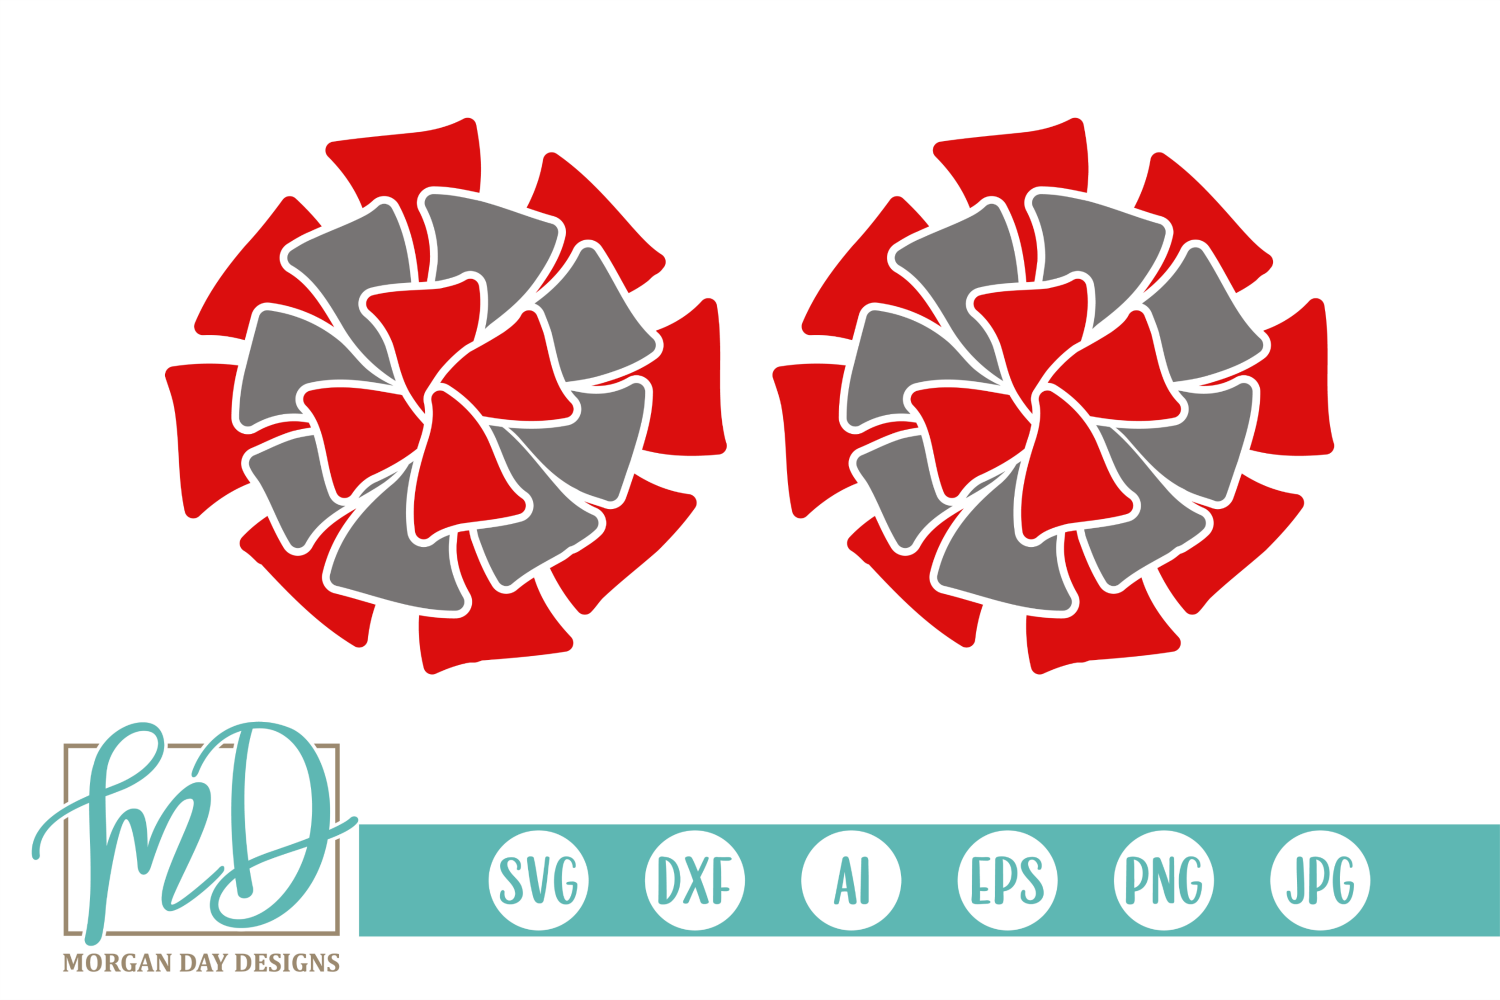 Cheer - Pom Poms - Cheerleader SVG, DXF, AI, EPS, PNG, JPEG example image 1